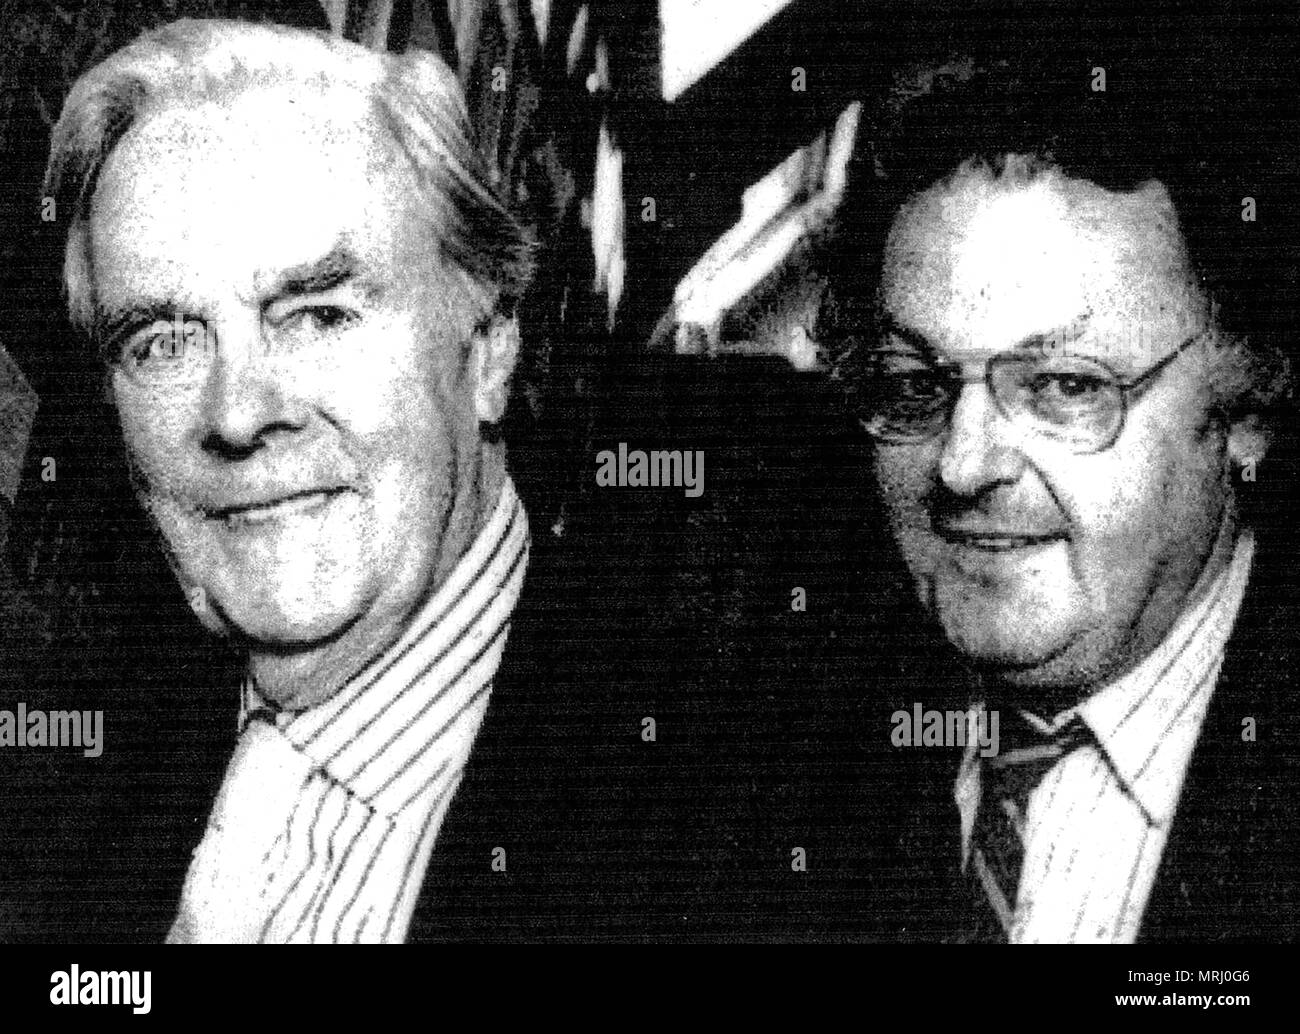 A 2002  photograph taken at the opening of the new Whitby Archive premises (N Yorkshire, UK) - Pictured is late film actor Ian Carmichael who opened the premises with the archives director and founder, author  Colin Waters - Stock Image